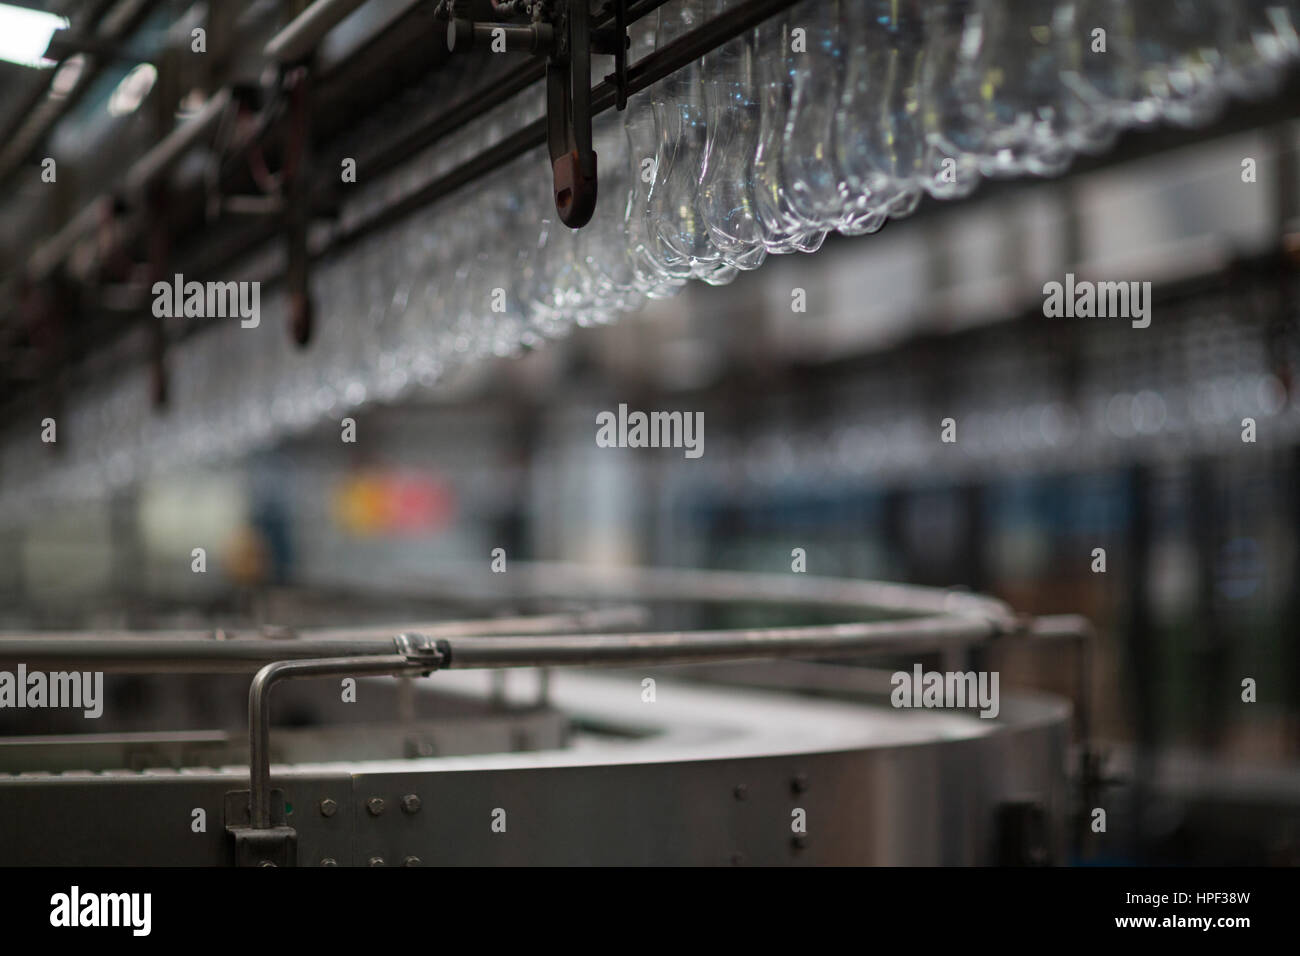 Empty bottles moving on production line in drinks production plant Stock Photo